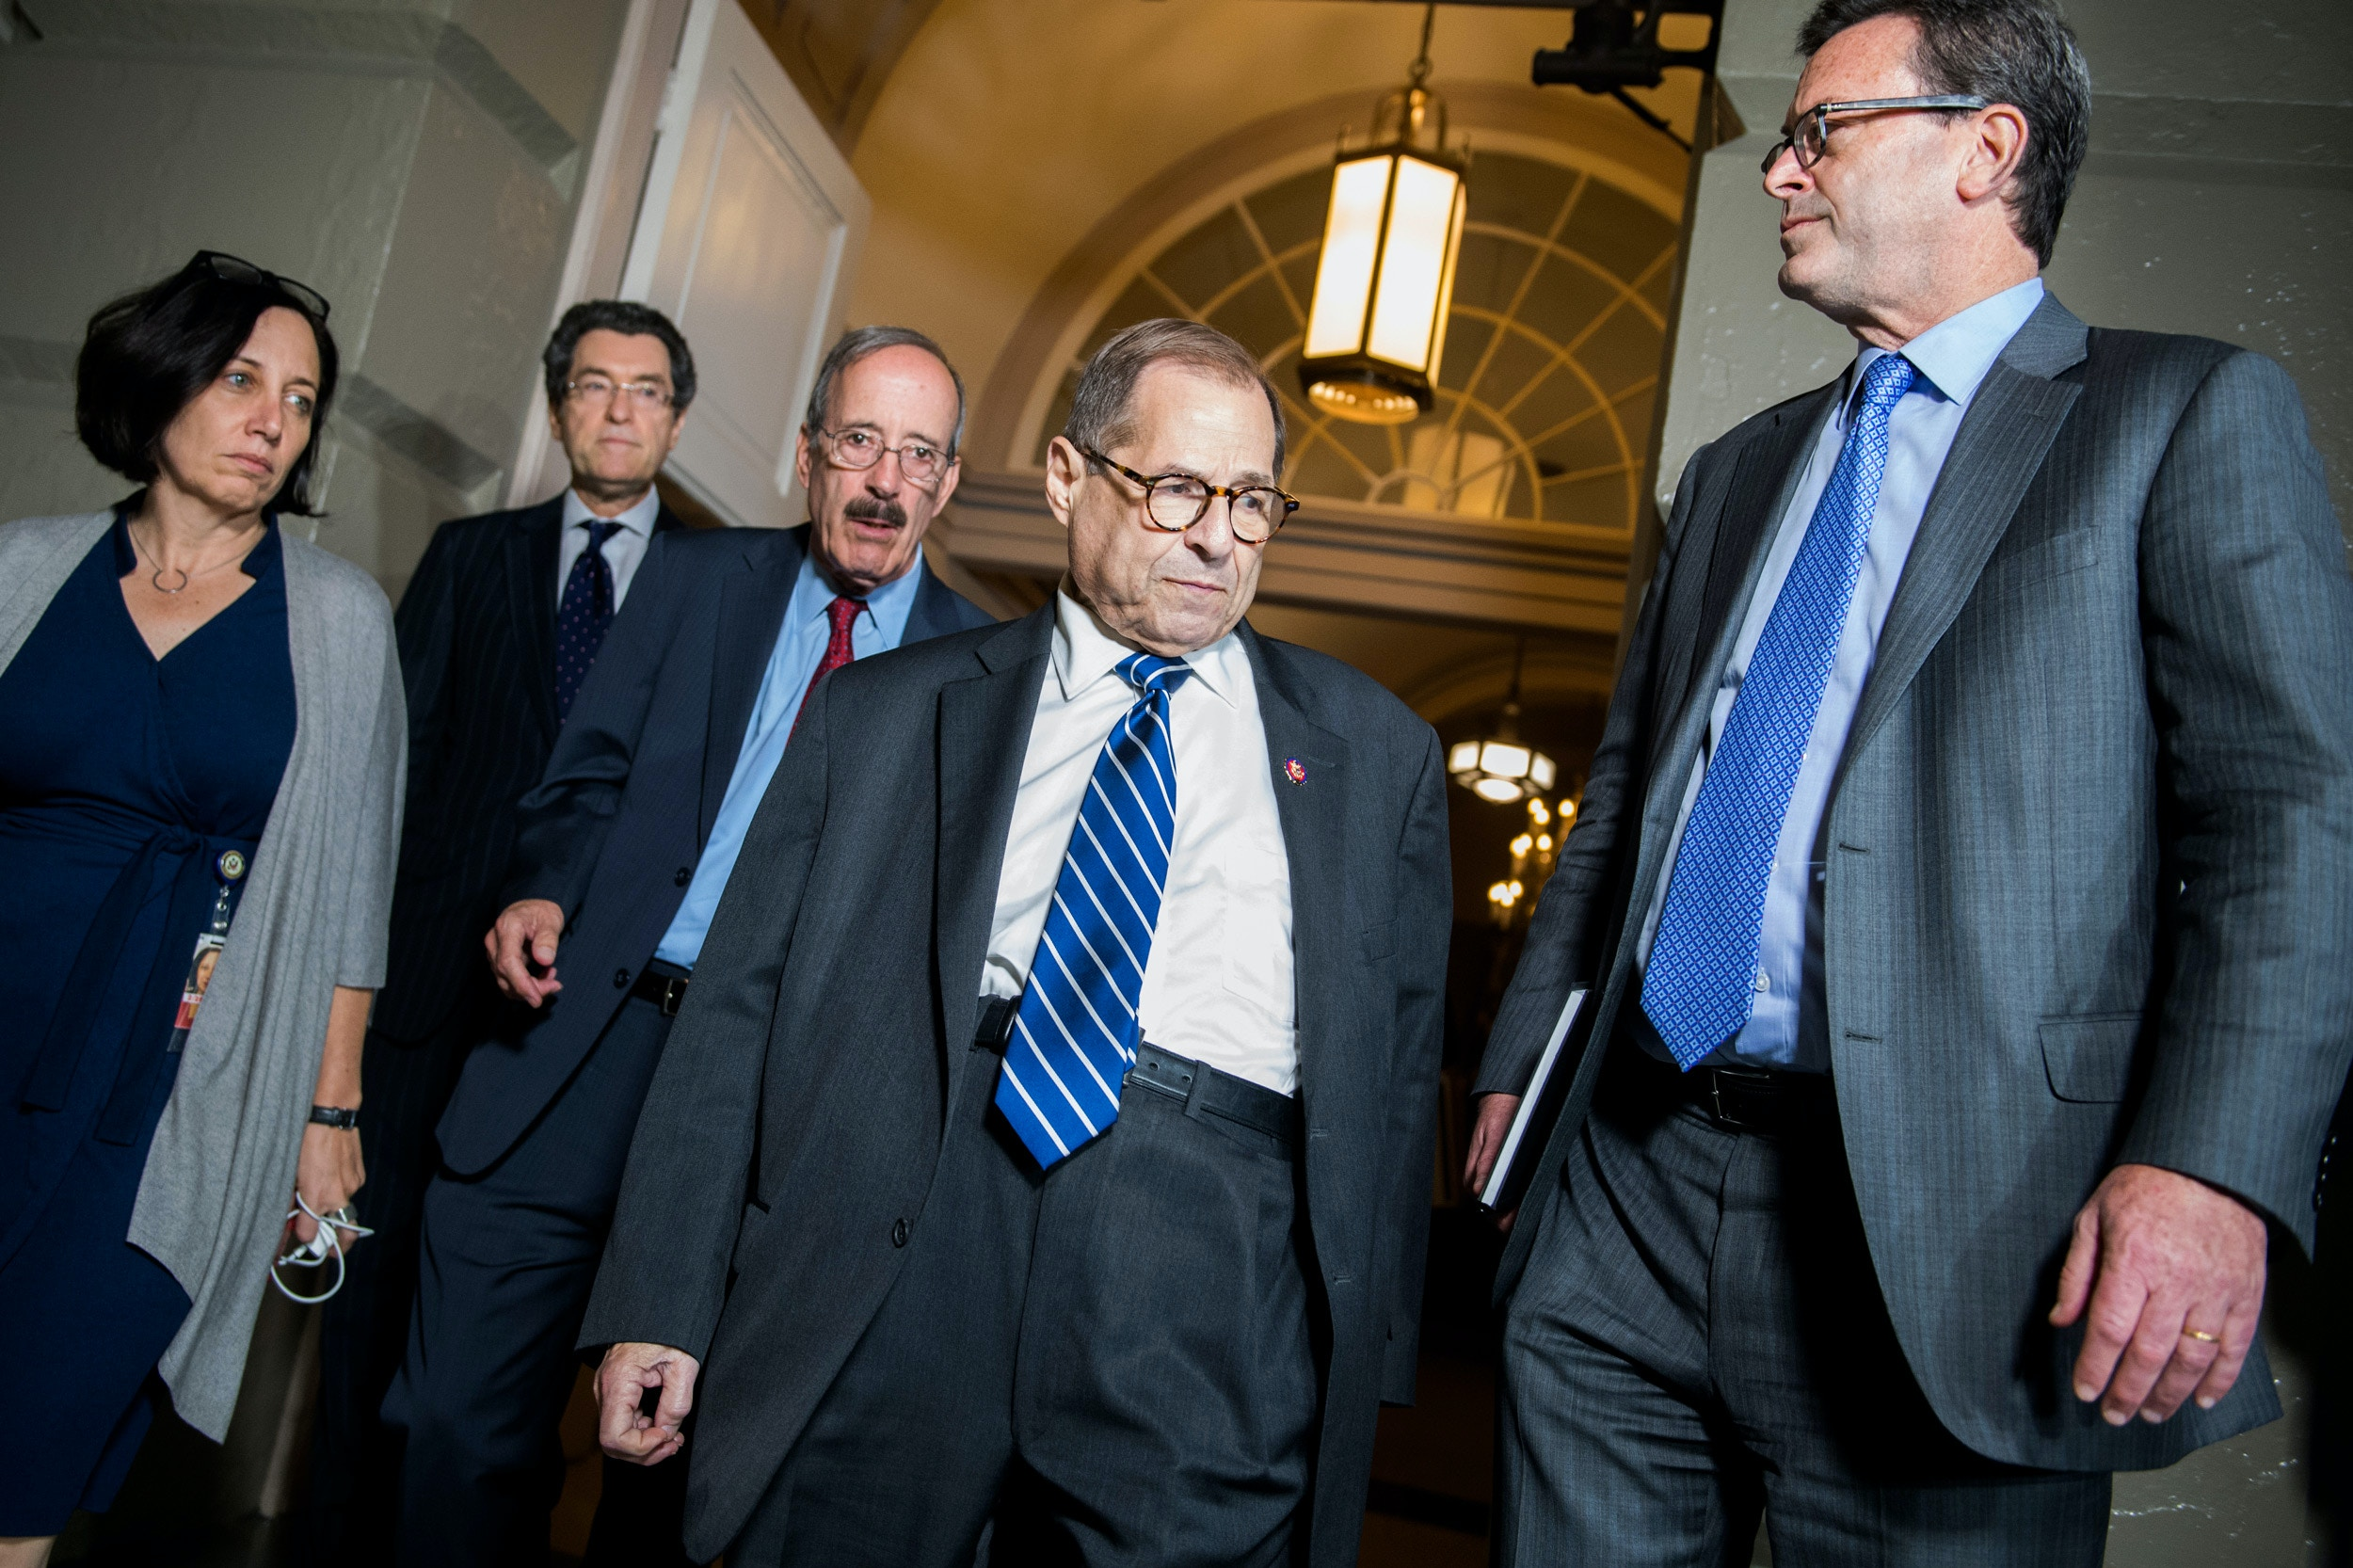 UNITED STATES - SEPTEMBER 24: House Judiciary Chairman Jerrold Nadler, D-N.Y., and Foreign Affairs Chairman Eliot Engel, D-N.Y., arrive for a meeting with the House Democratic Caucus about an impeachment inquiry of President Trump in the Capitol on Tuesday, September 24, 2019. Committee counsels Norm Eisen, second from left, and Barry Berke, right, also appear. (Photo By Tom William/CQ-Roll Call, Inc via Getty Images)